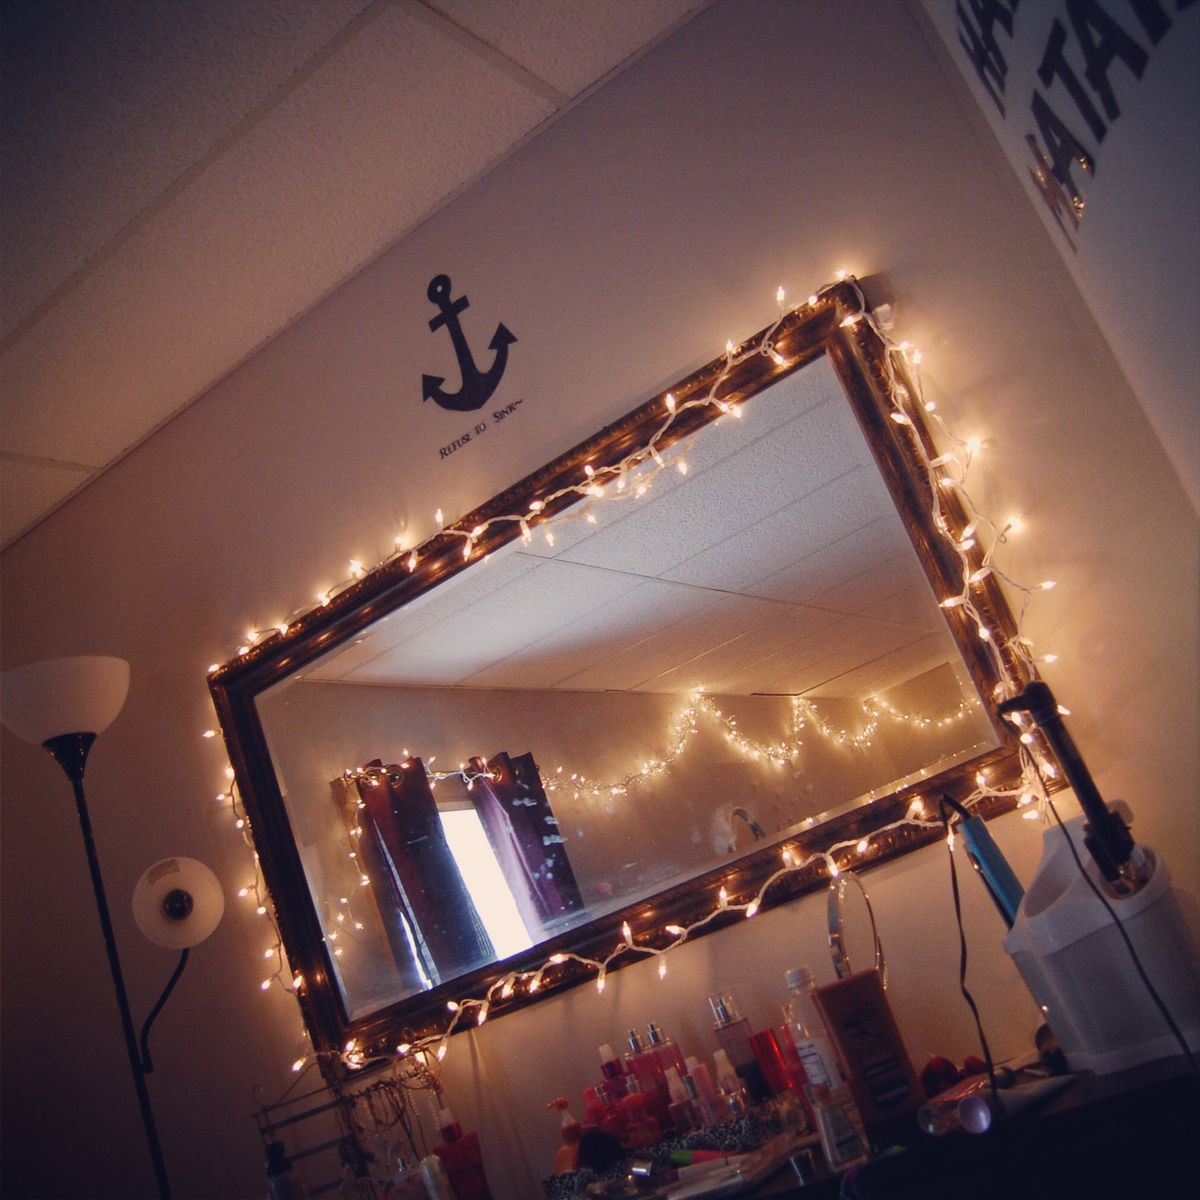 Cute tumblr room mirror bedroom pinterest room room for Mirror quotes tumblr